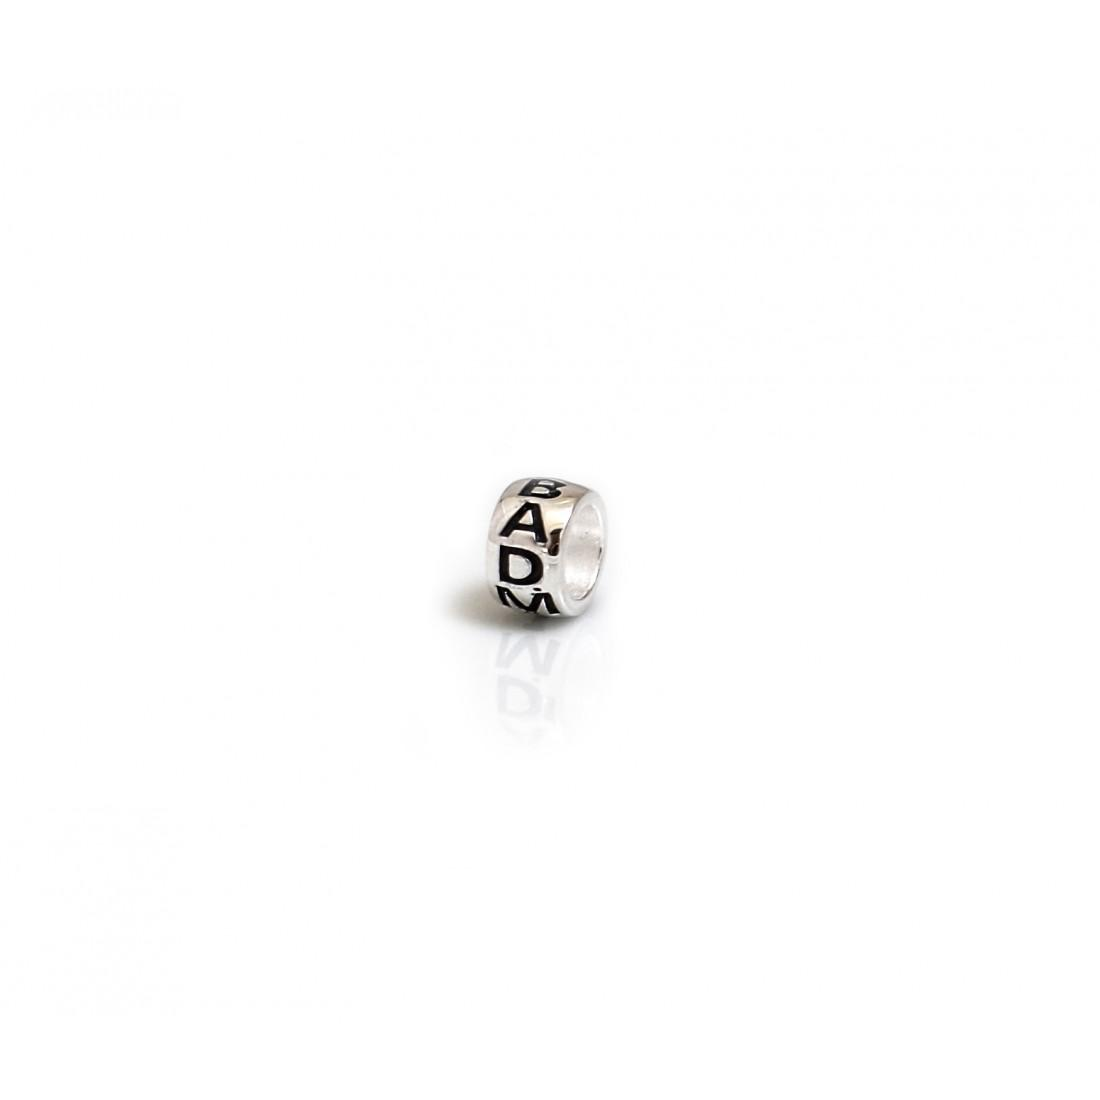 Limited Edition Exclusive Sterling Silver Badminton Roller Bead